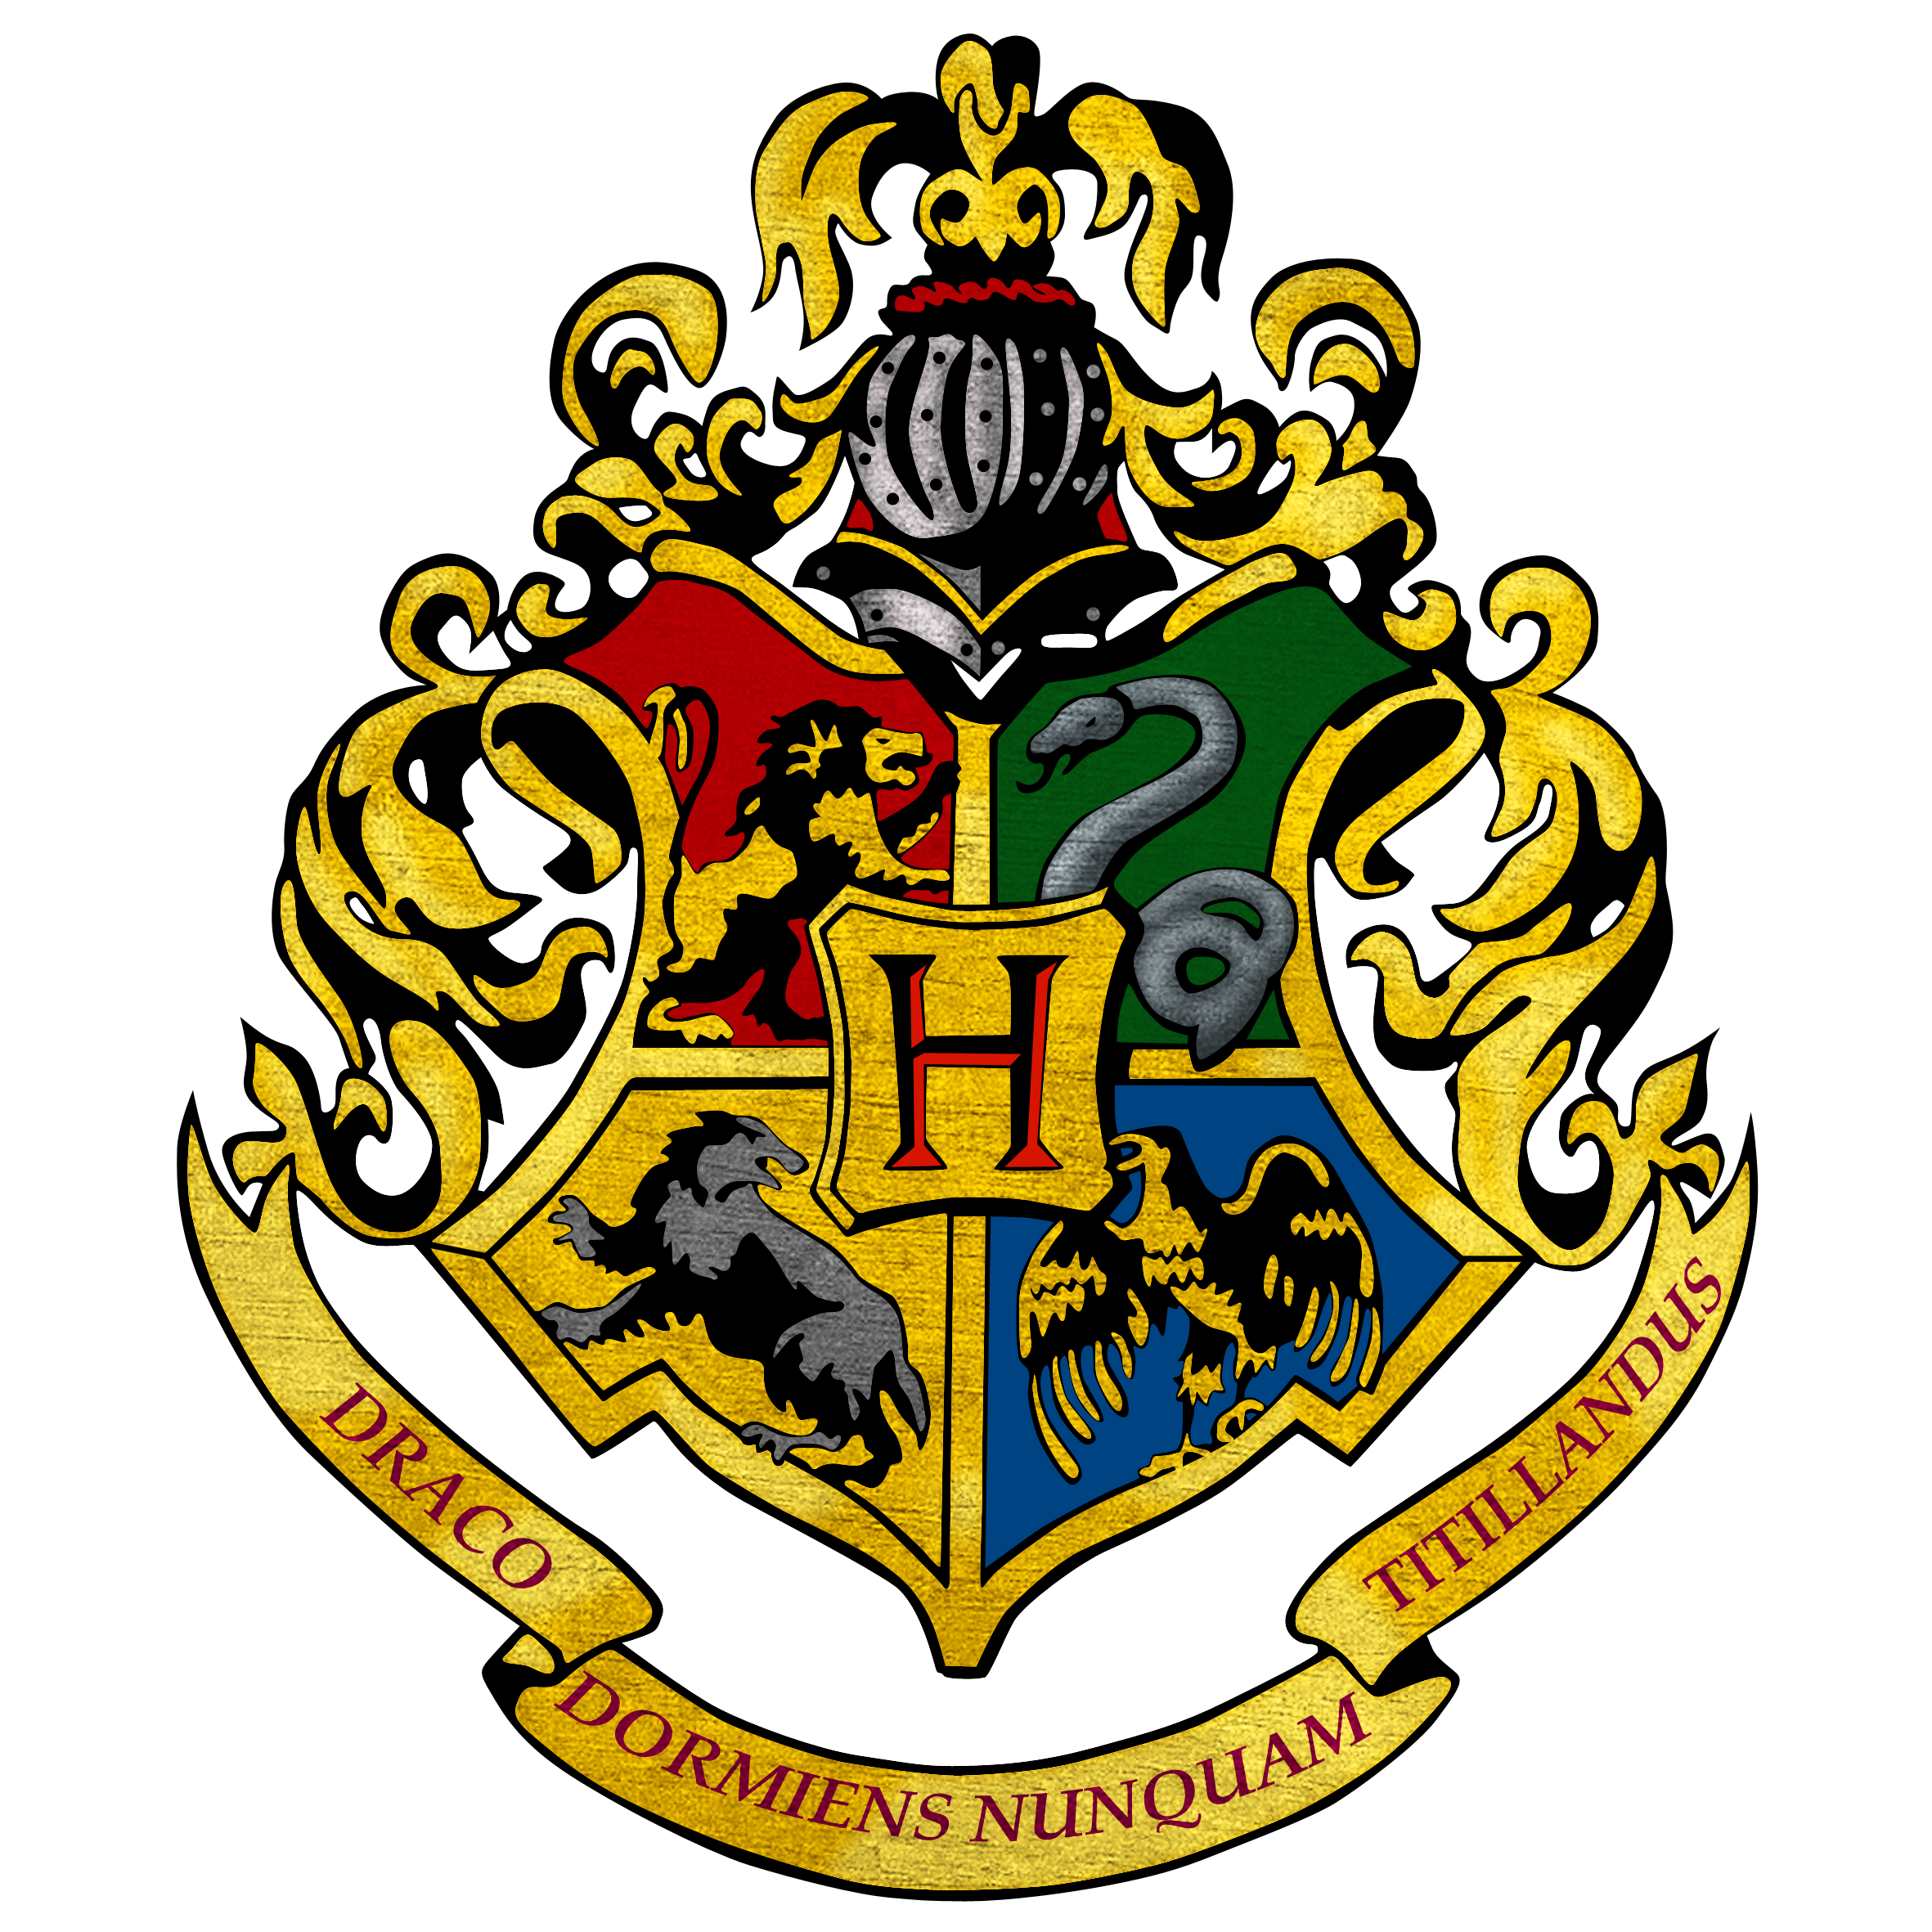 Hogwarts logo by shadoPro on DeviantArt